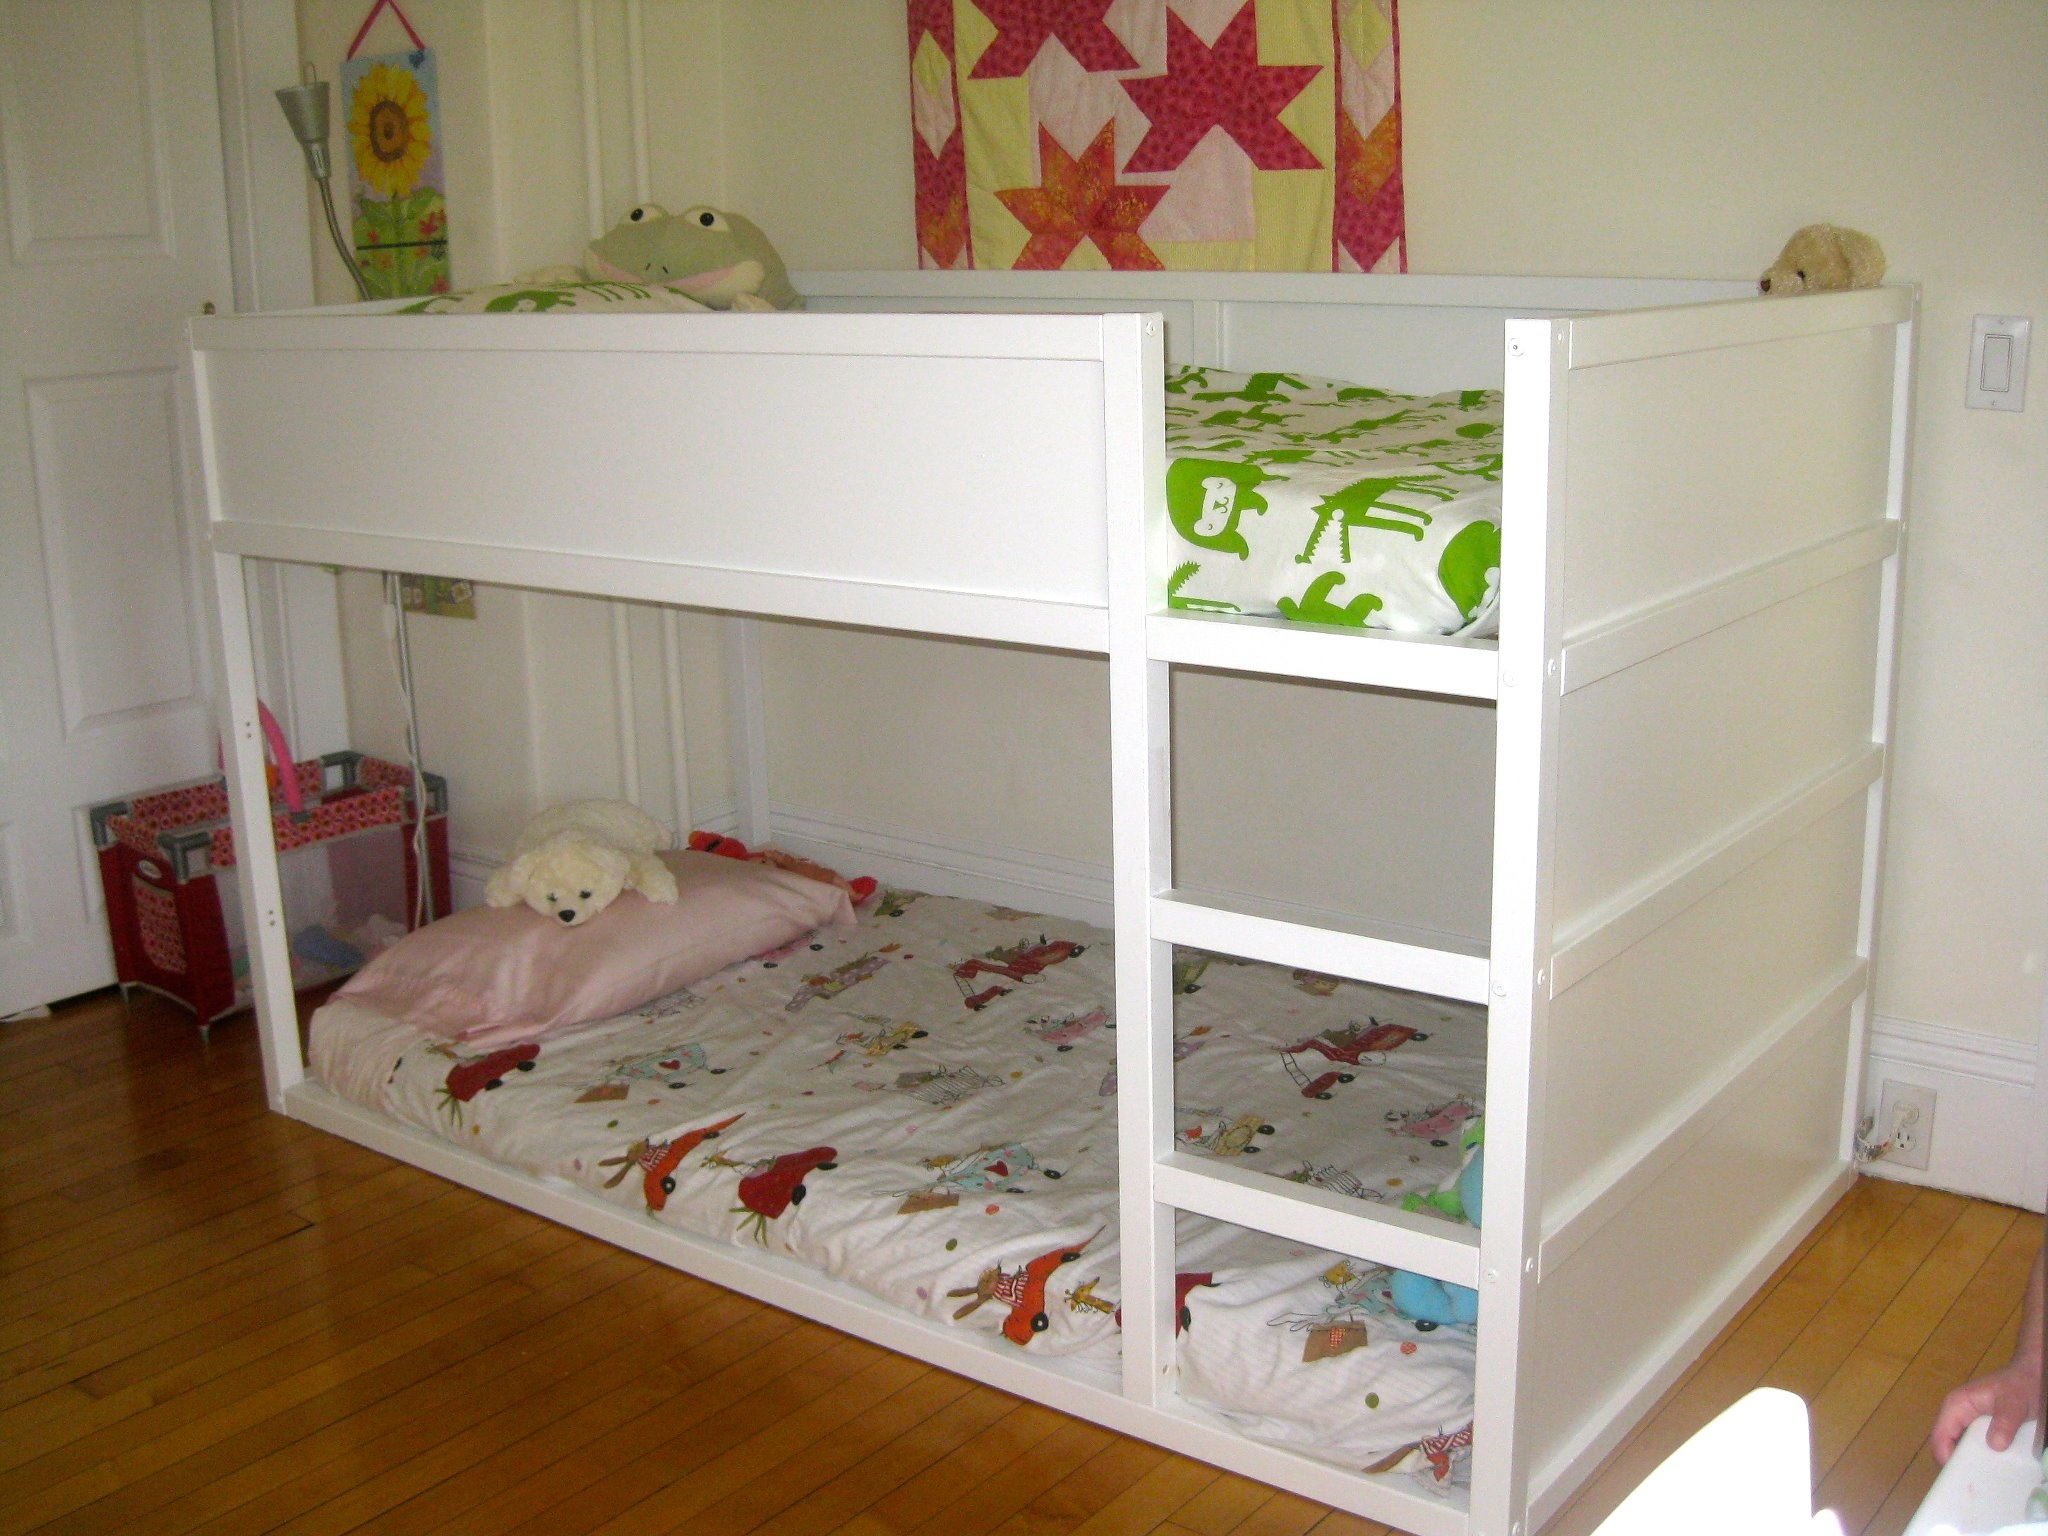 IKEA Kids Room with Bunk Bed